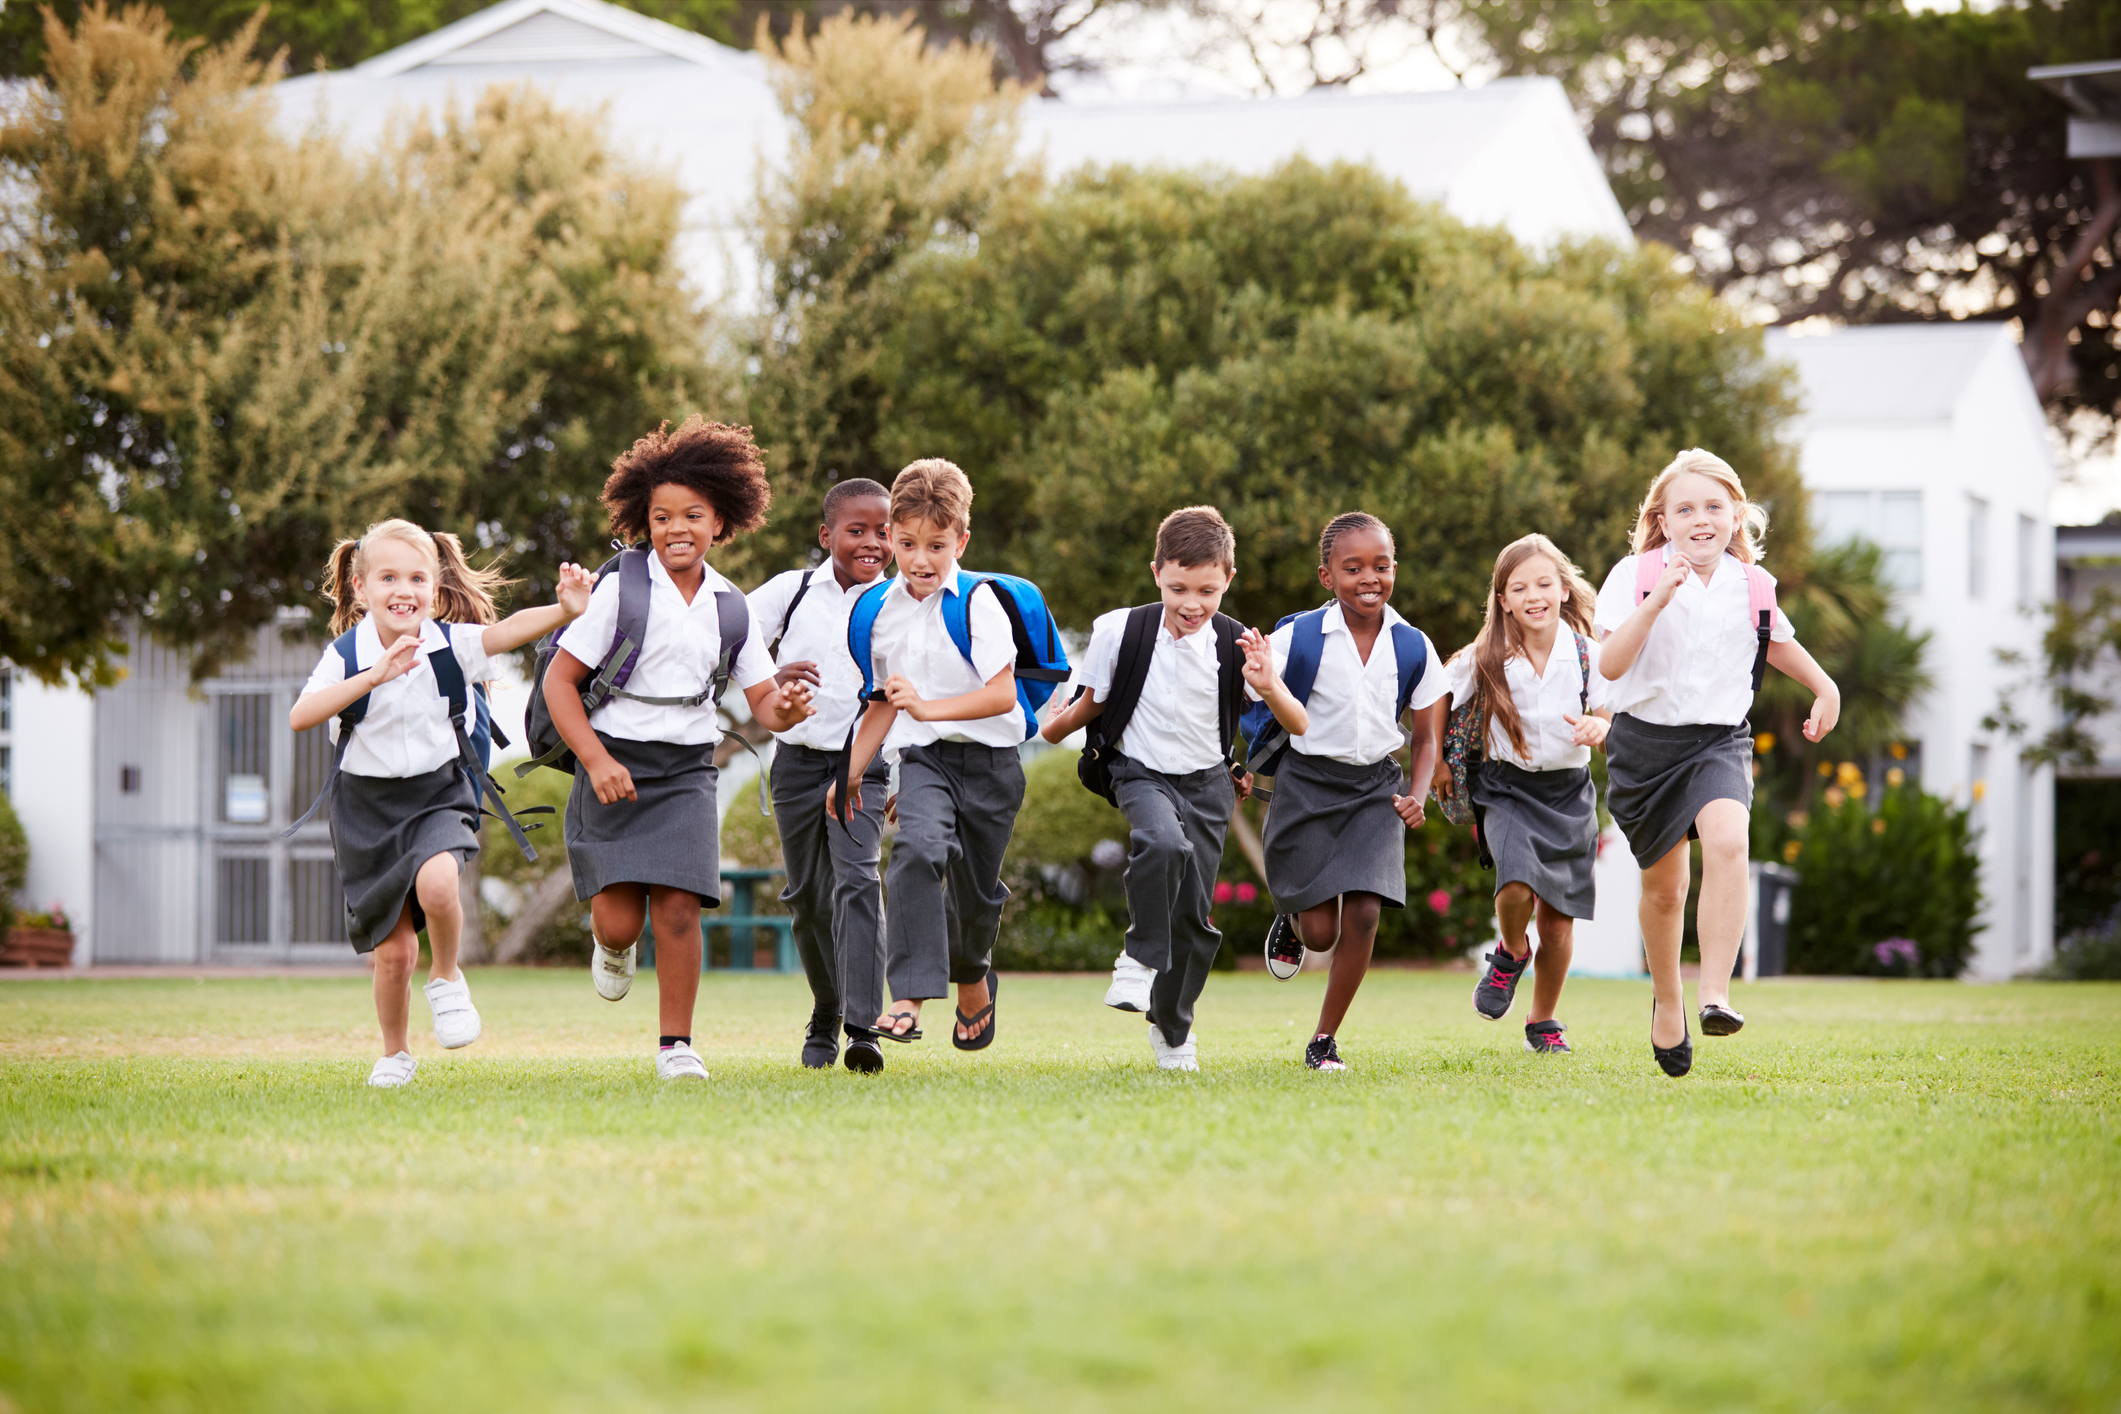 a large group of happy students run across a playing field